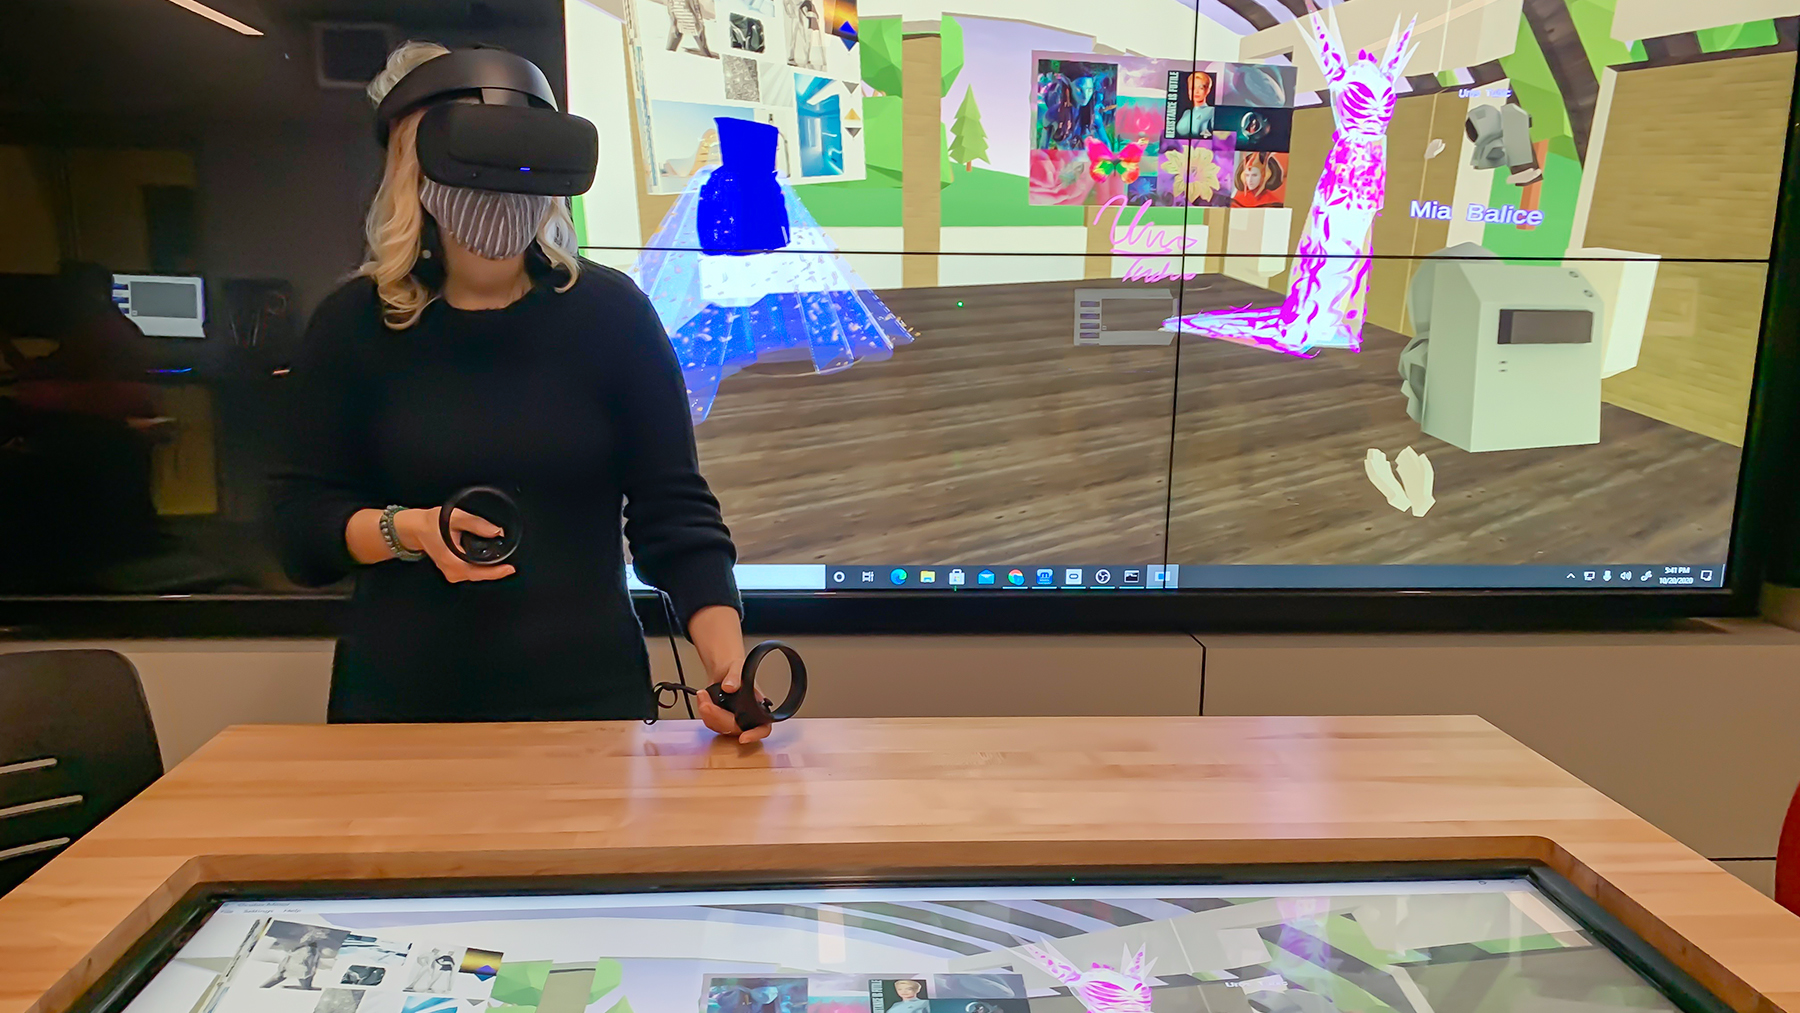 Art professor Chiara Vincenzi uses Komodo, a virtual reality program being developed by the IDEA Lab at Illinois, to offer critiques of dress designs created by her students. Image courtesy CITL Virtual Design Lab